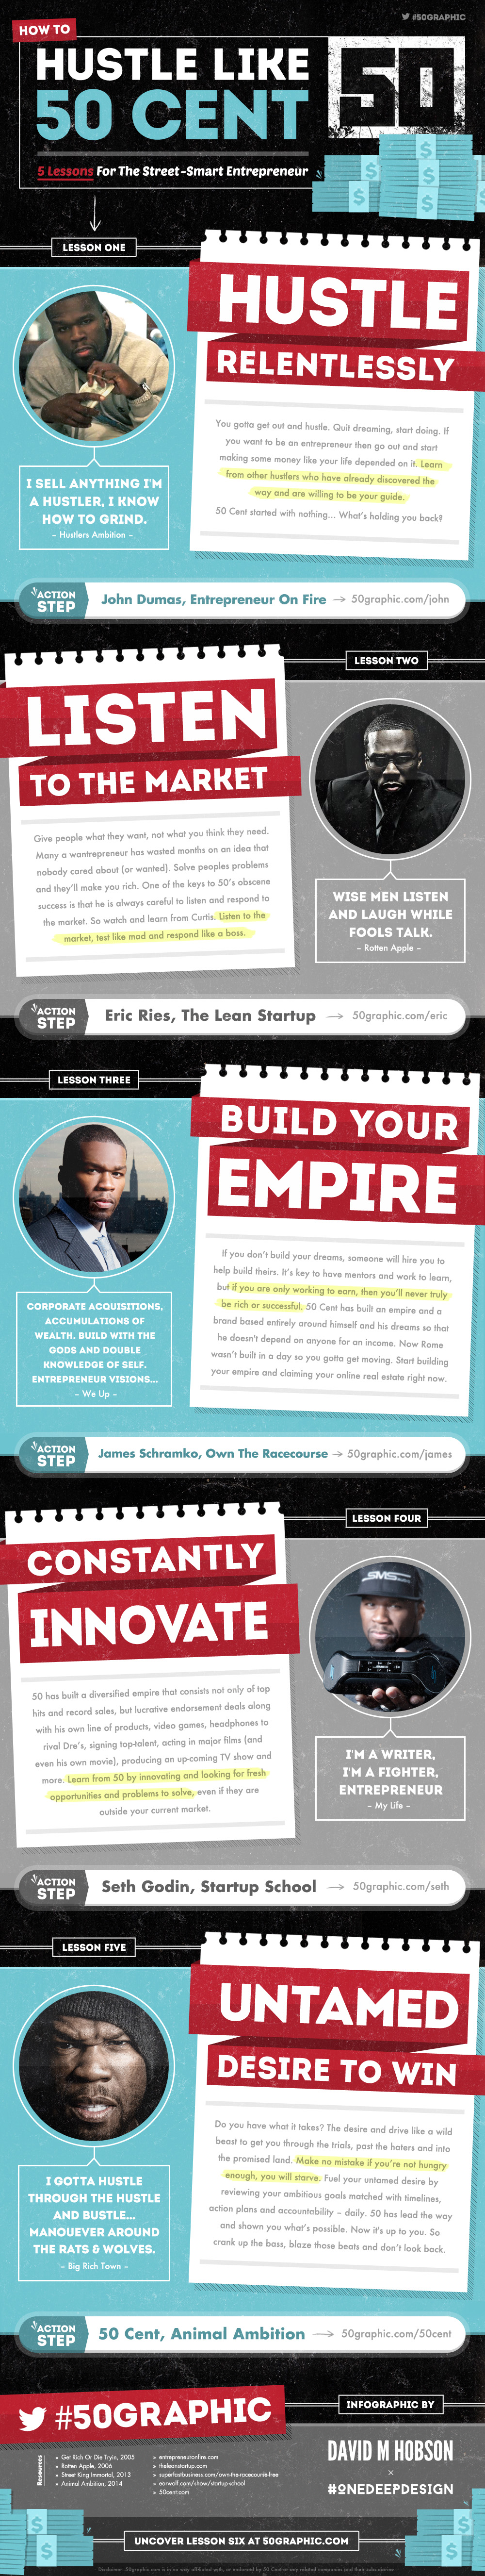 How To Hustle Like 50 Cent: 5 Lessons For The Street-Smart Entrepreneur